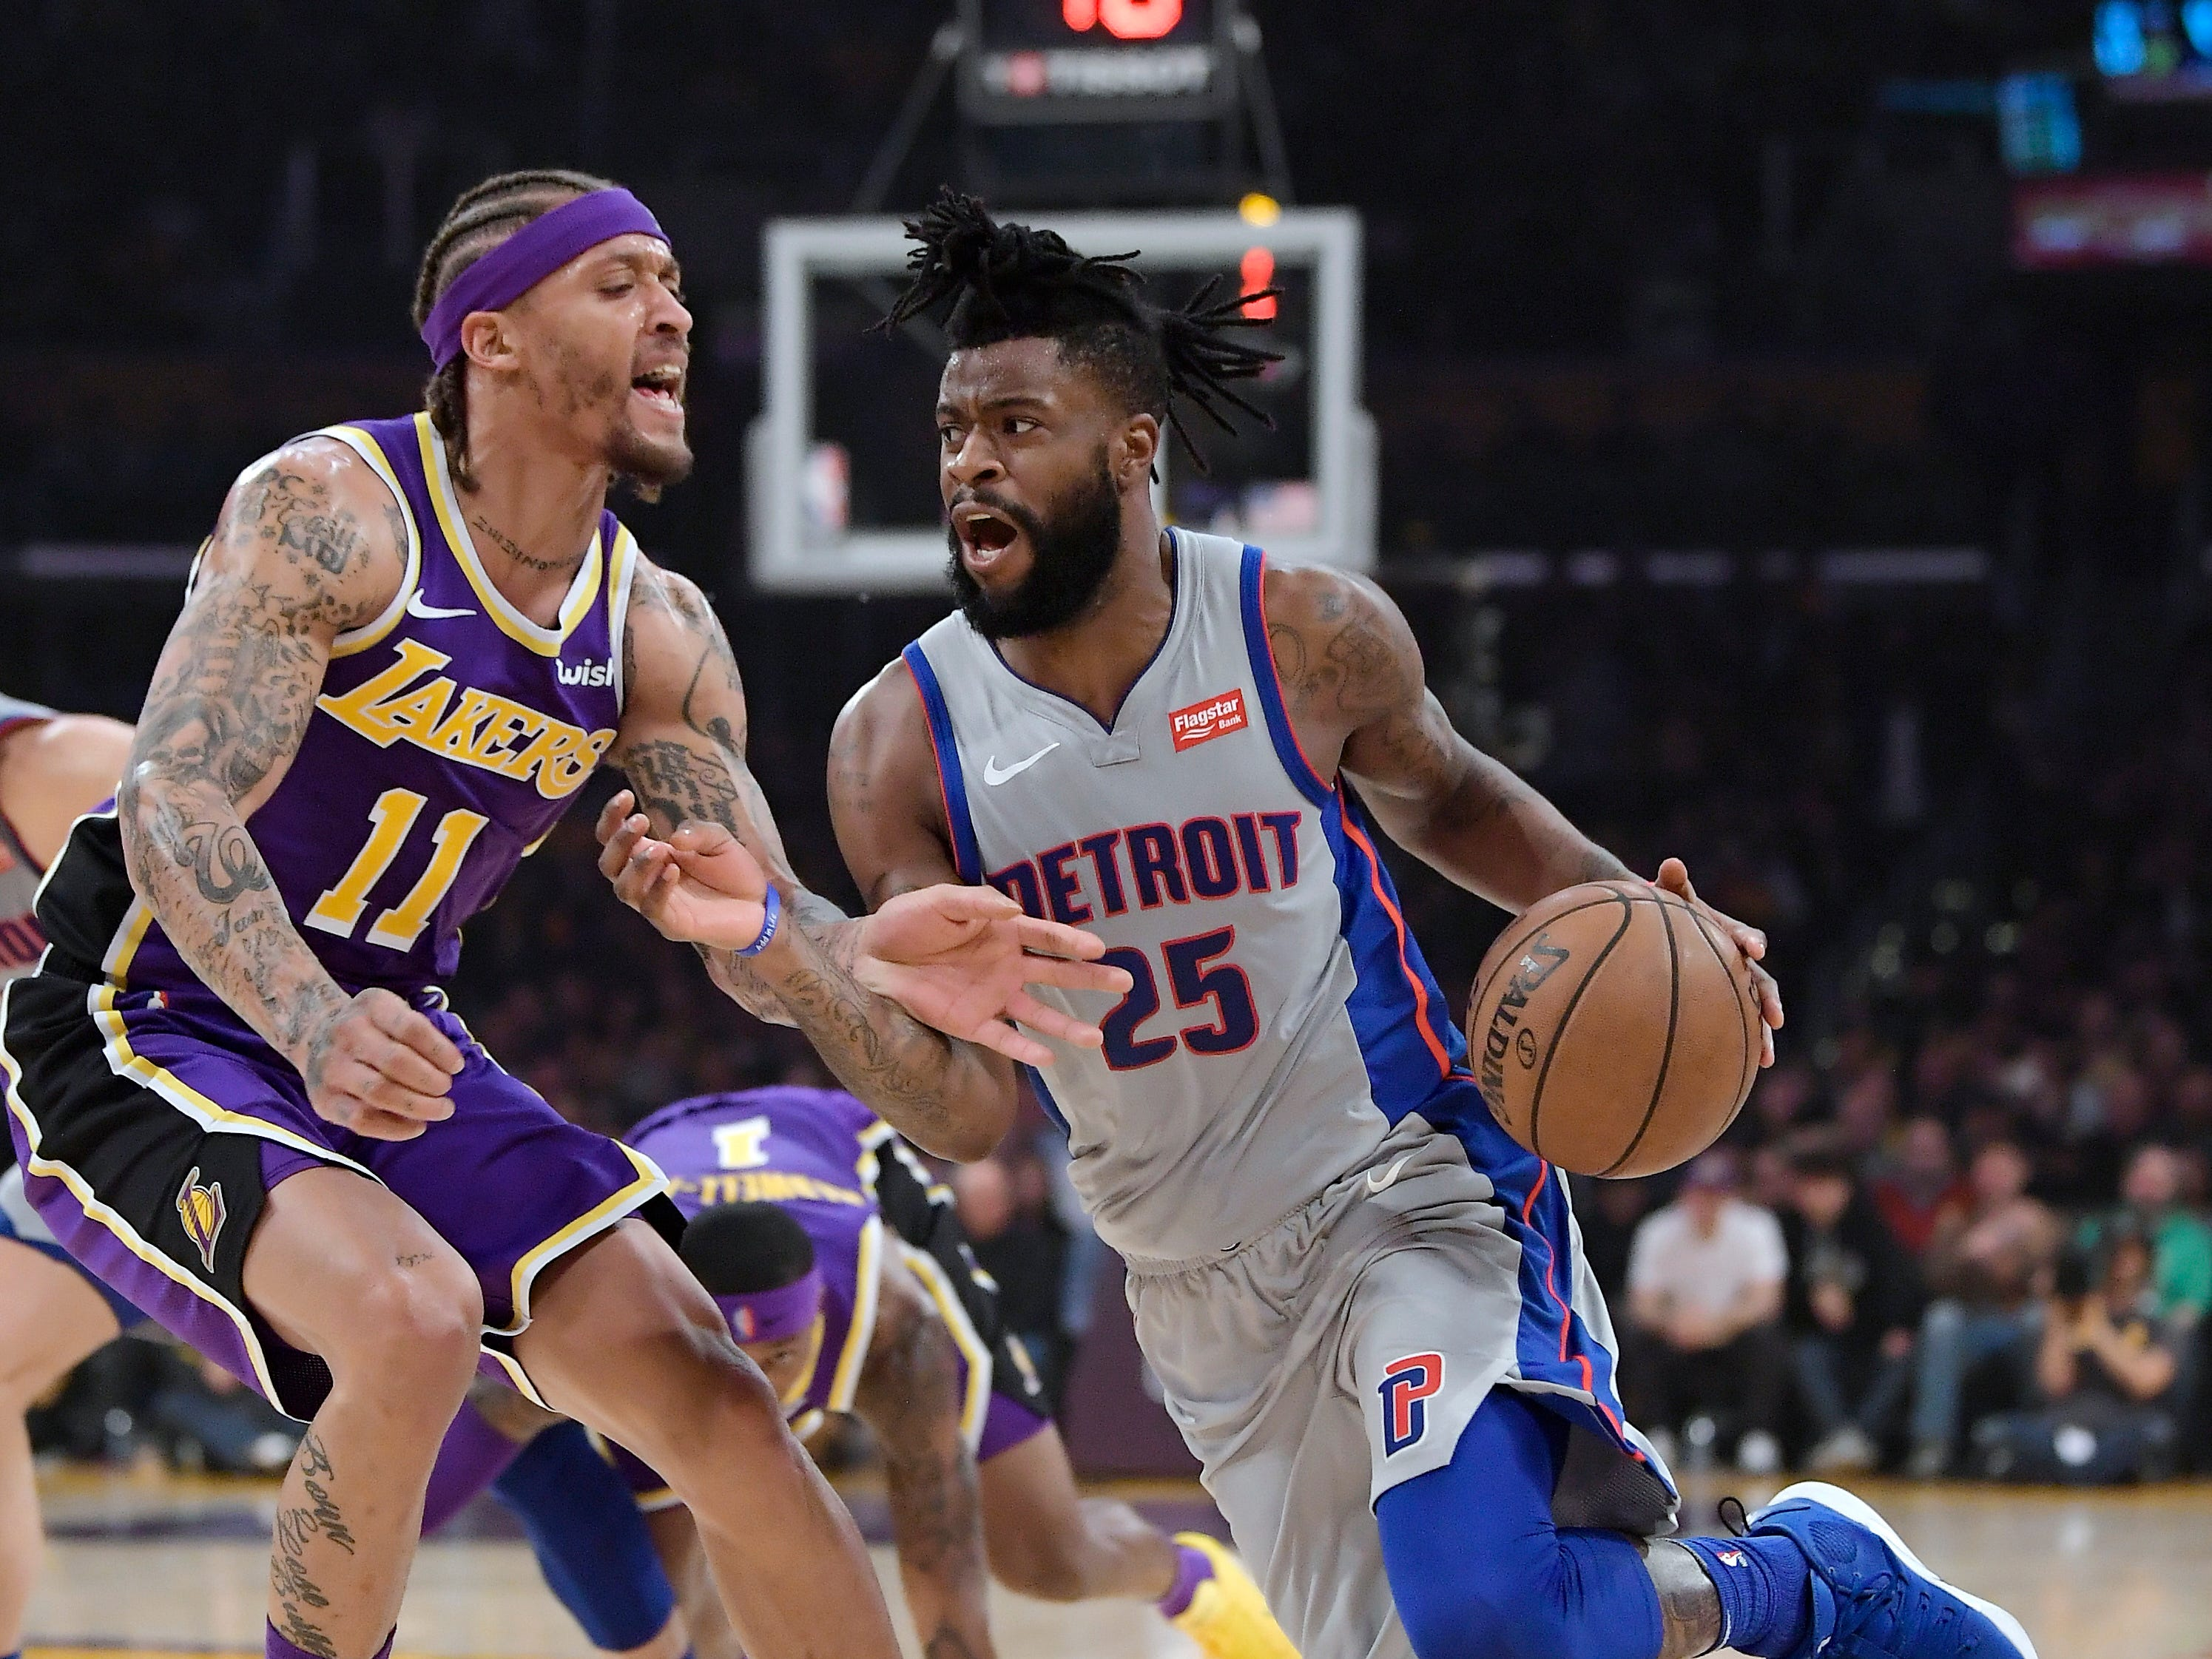 Detroit Pistons guard Reggie Bullock, right, tries to drive past Los Angeles Lakers forward Michael Beasley during the first half of an NBA basketball game Wednesday, Jan. 9, 2019, in Los Angeles.